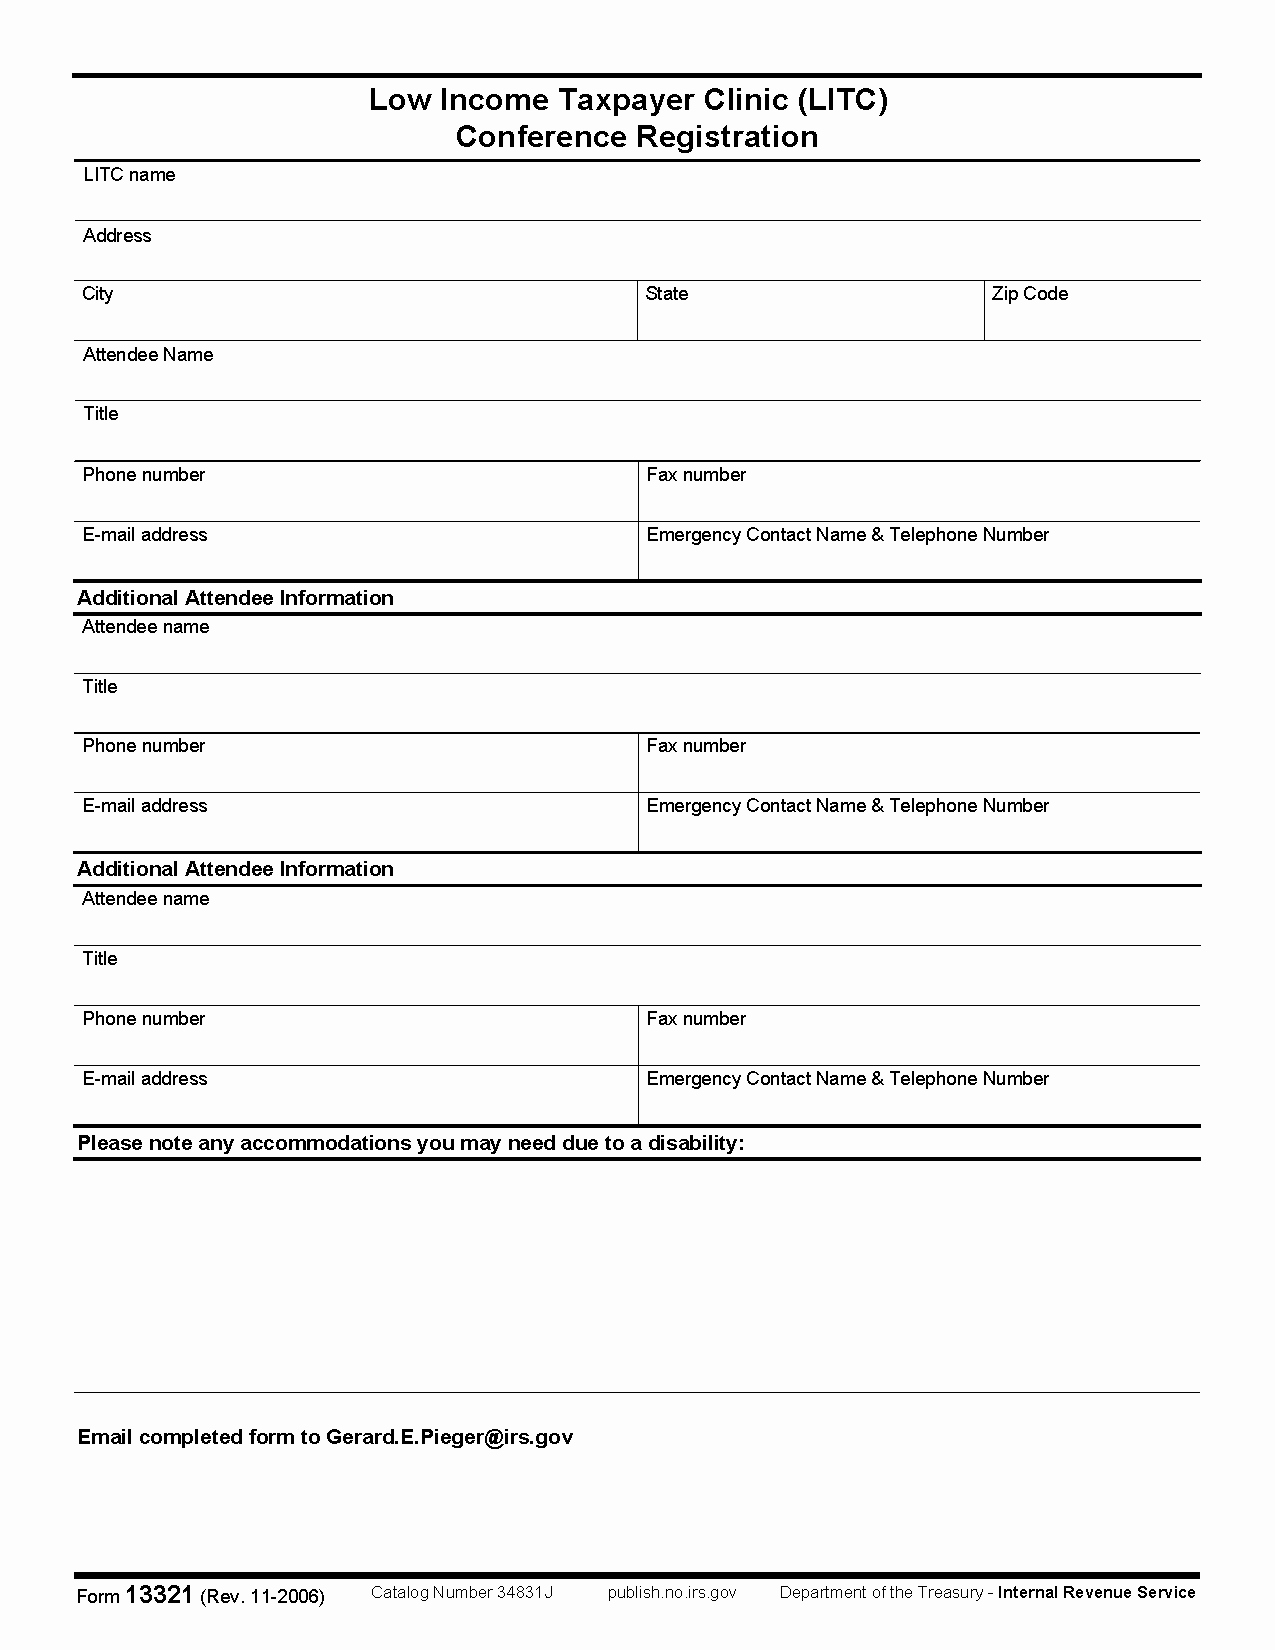 Conference Registration forms Template Awesome Conference Registration form Template